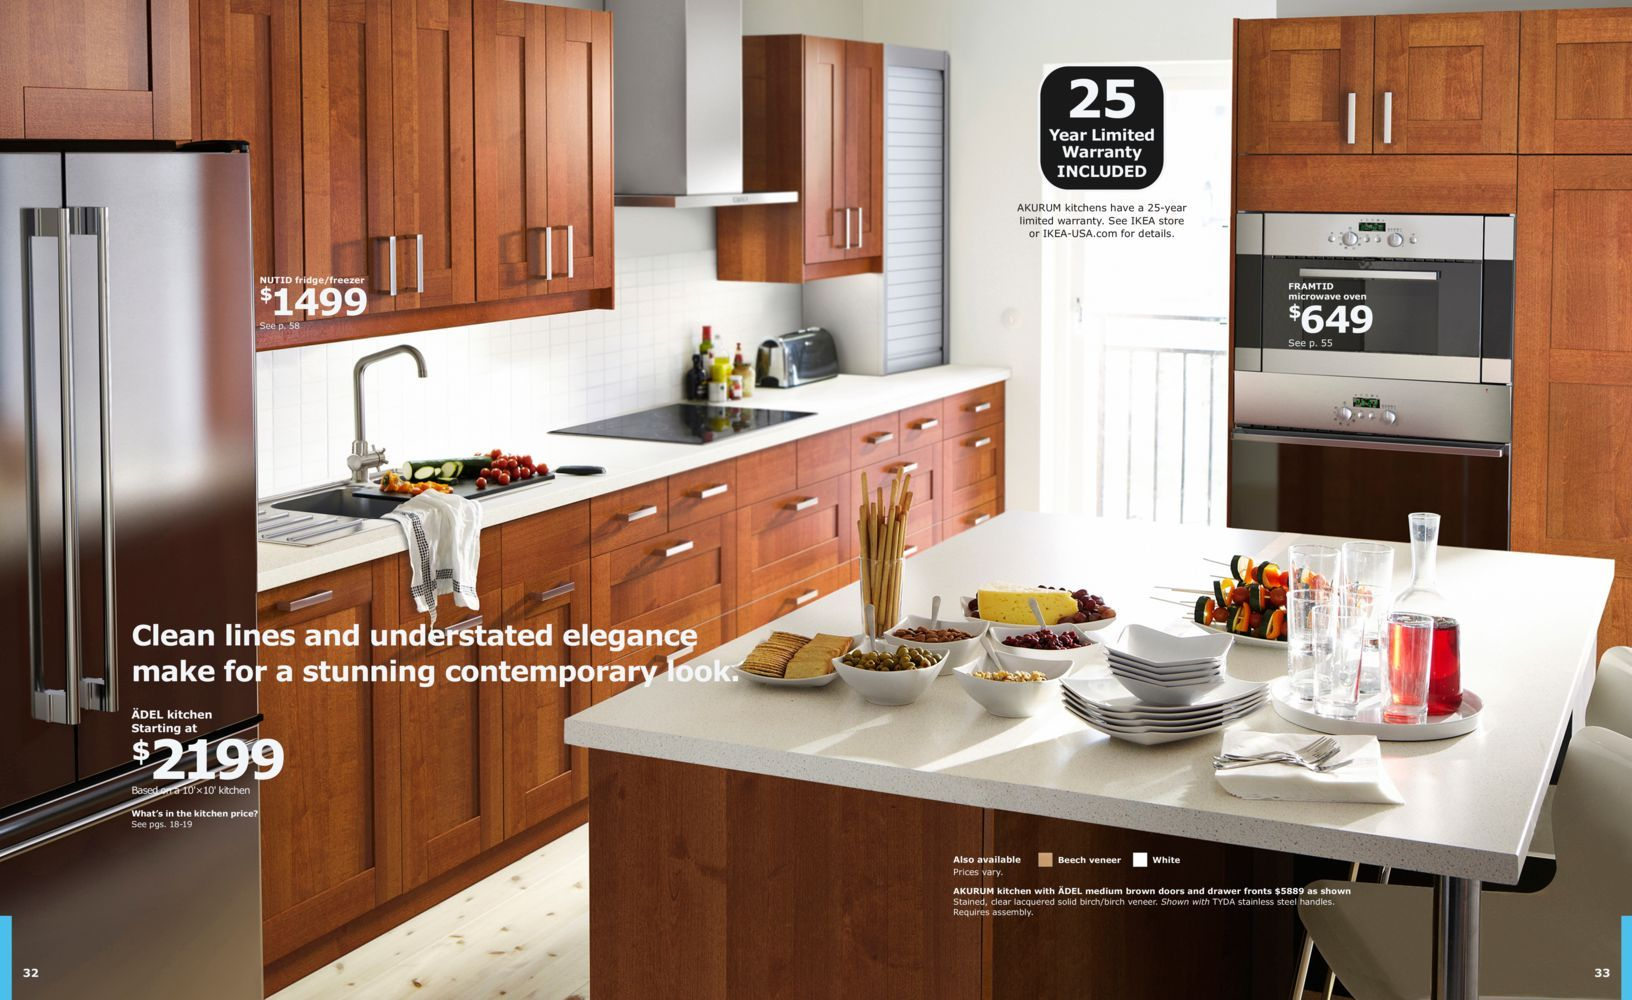 Same Color Style Hardware As Our Cabinets Show To Cabinet